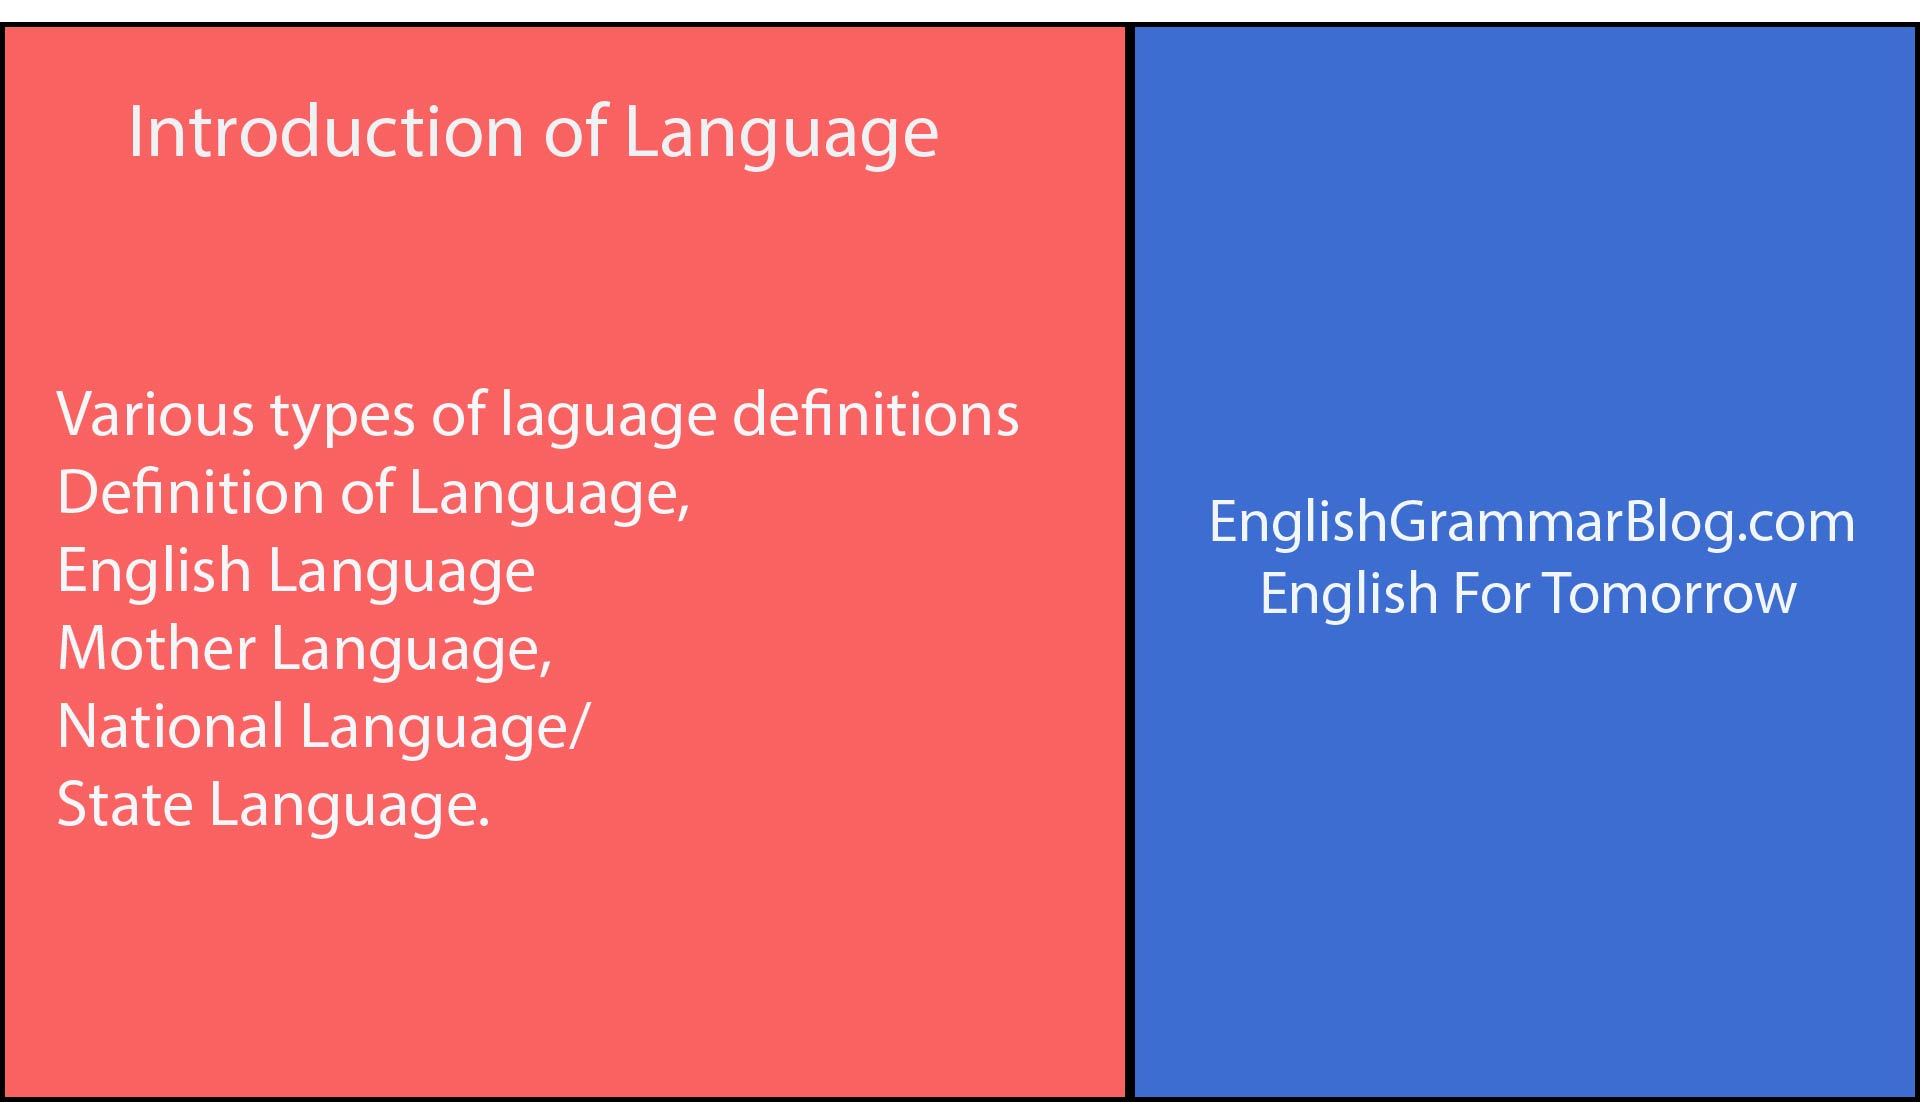 Introduction of Language